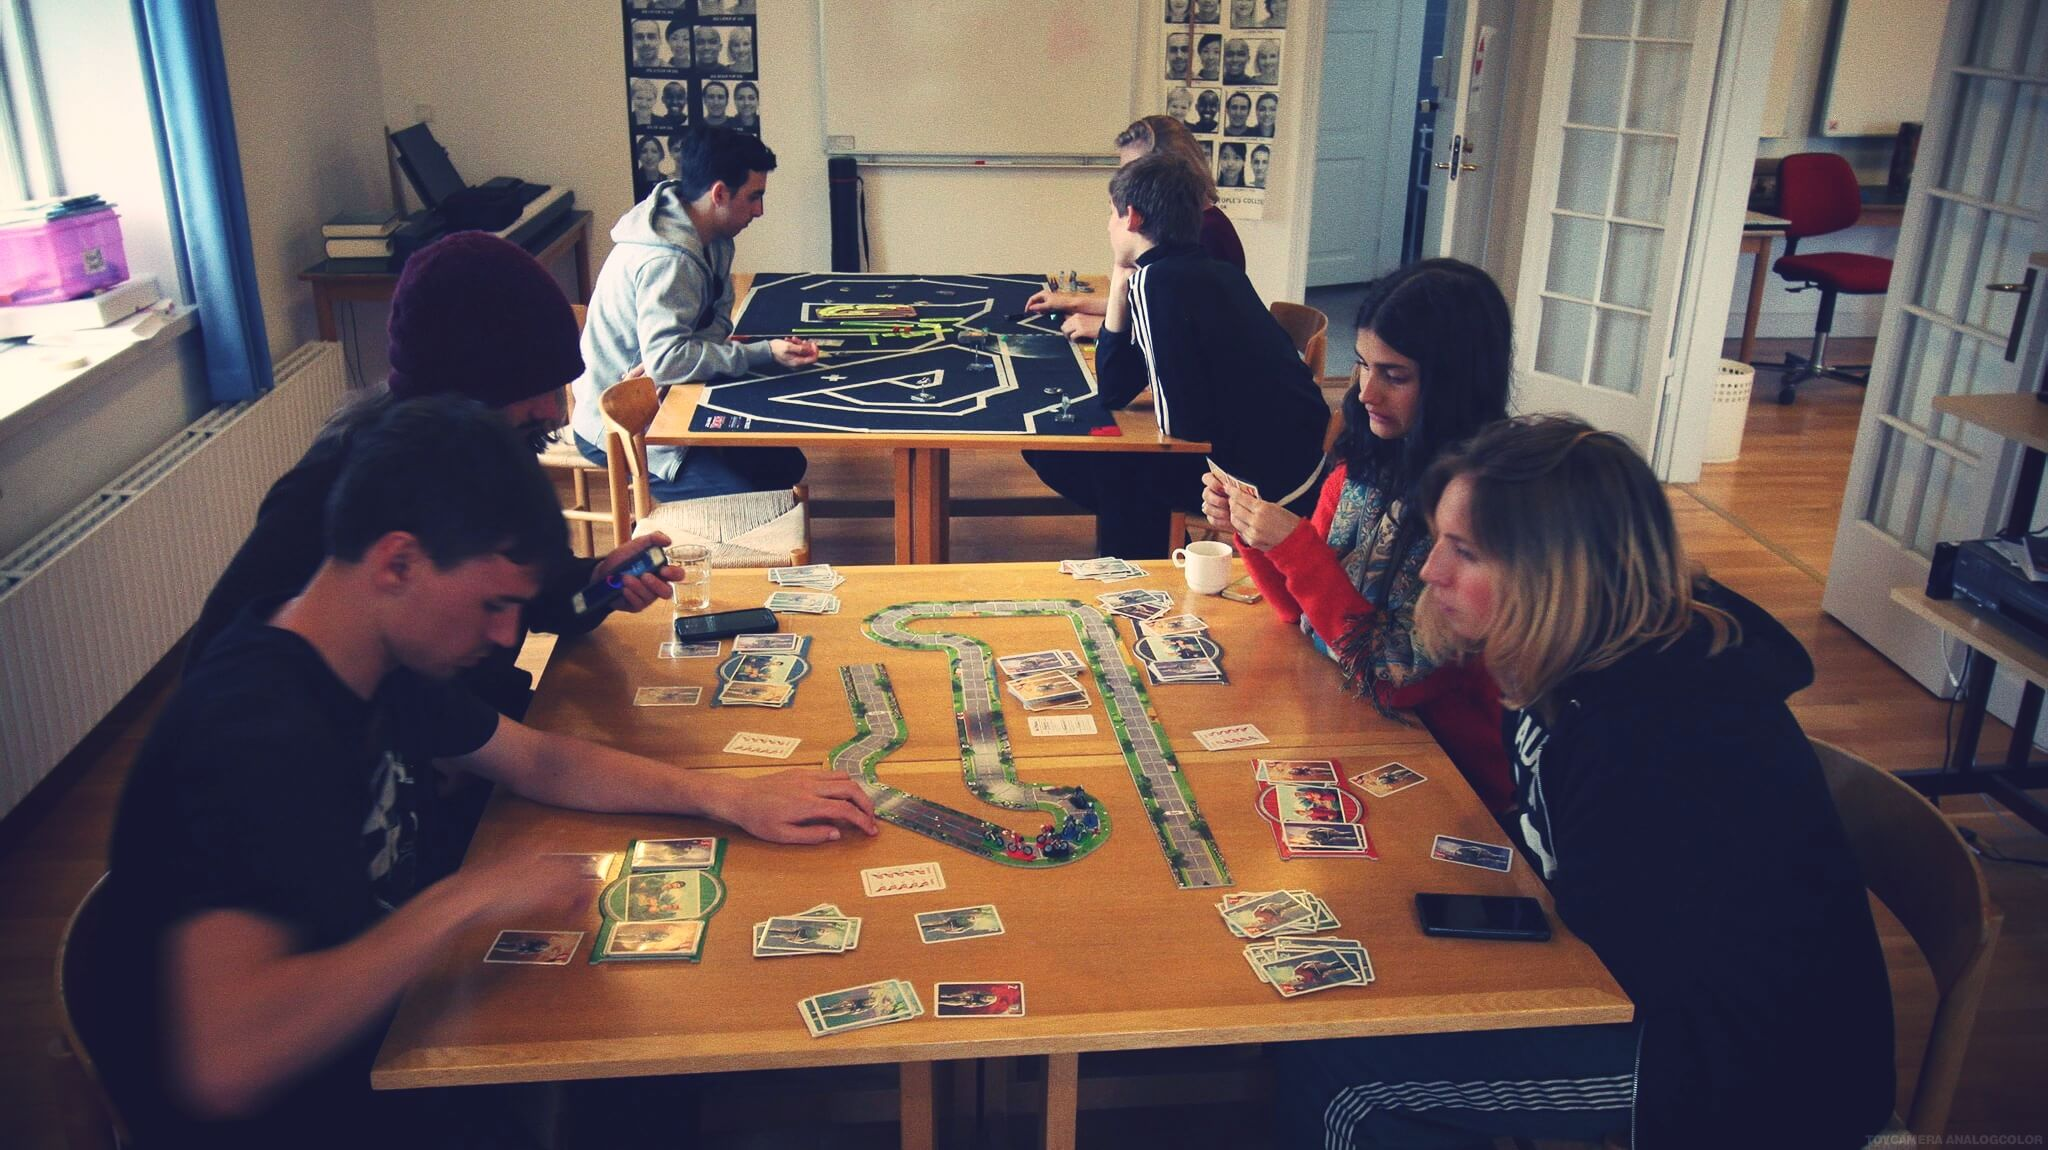 folk high school tabletop games class at International People's College in Denmark 1